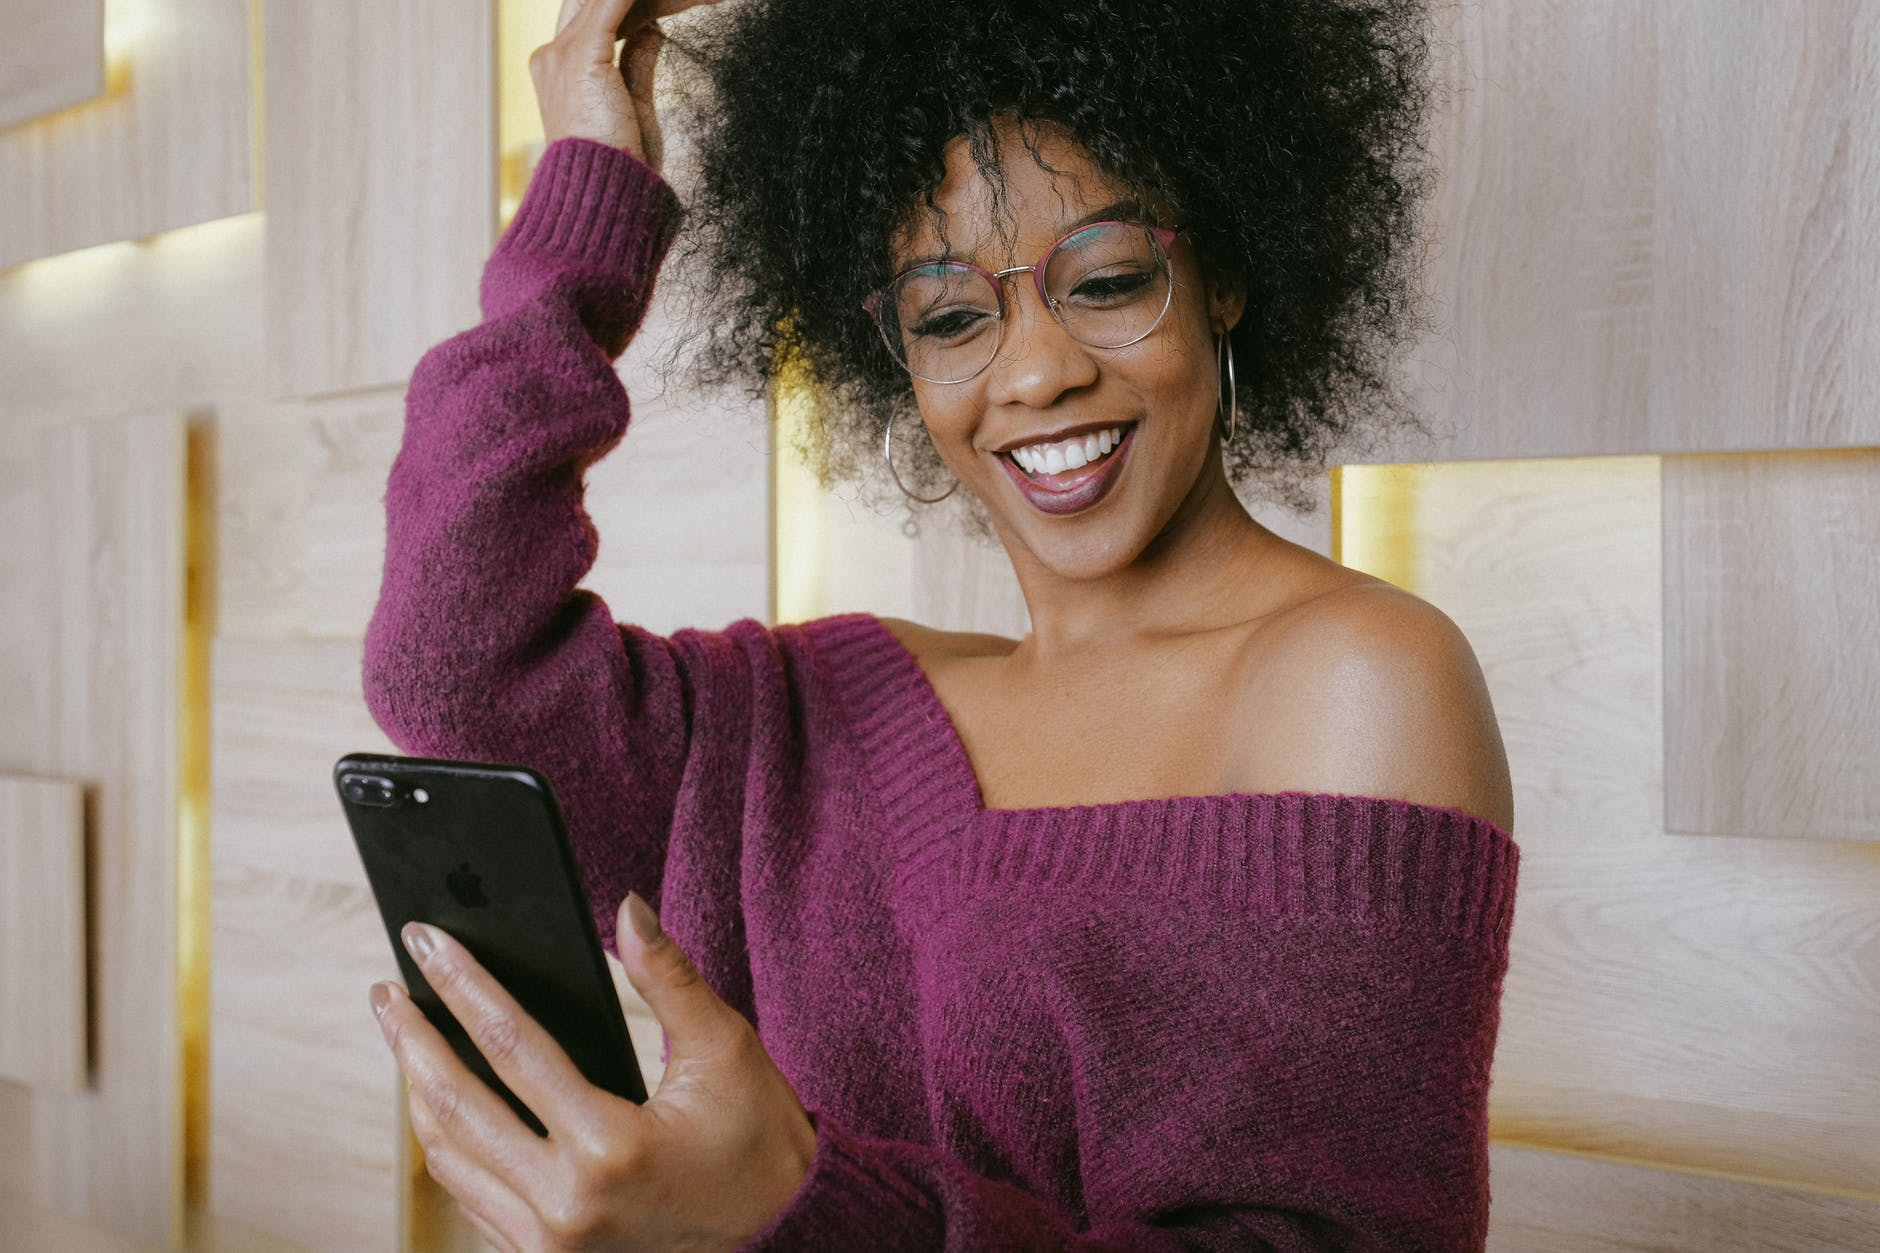 Dark female smiling and holding a phone in front of her